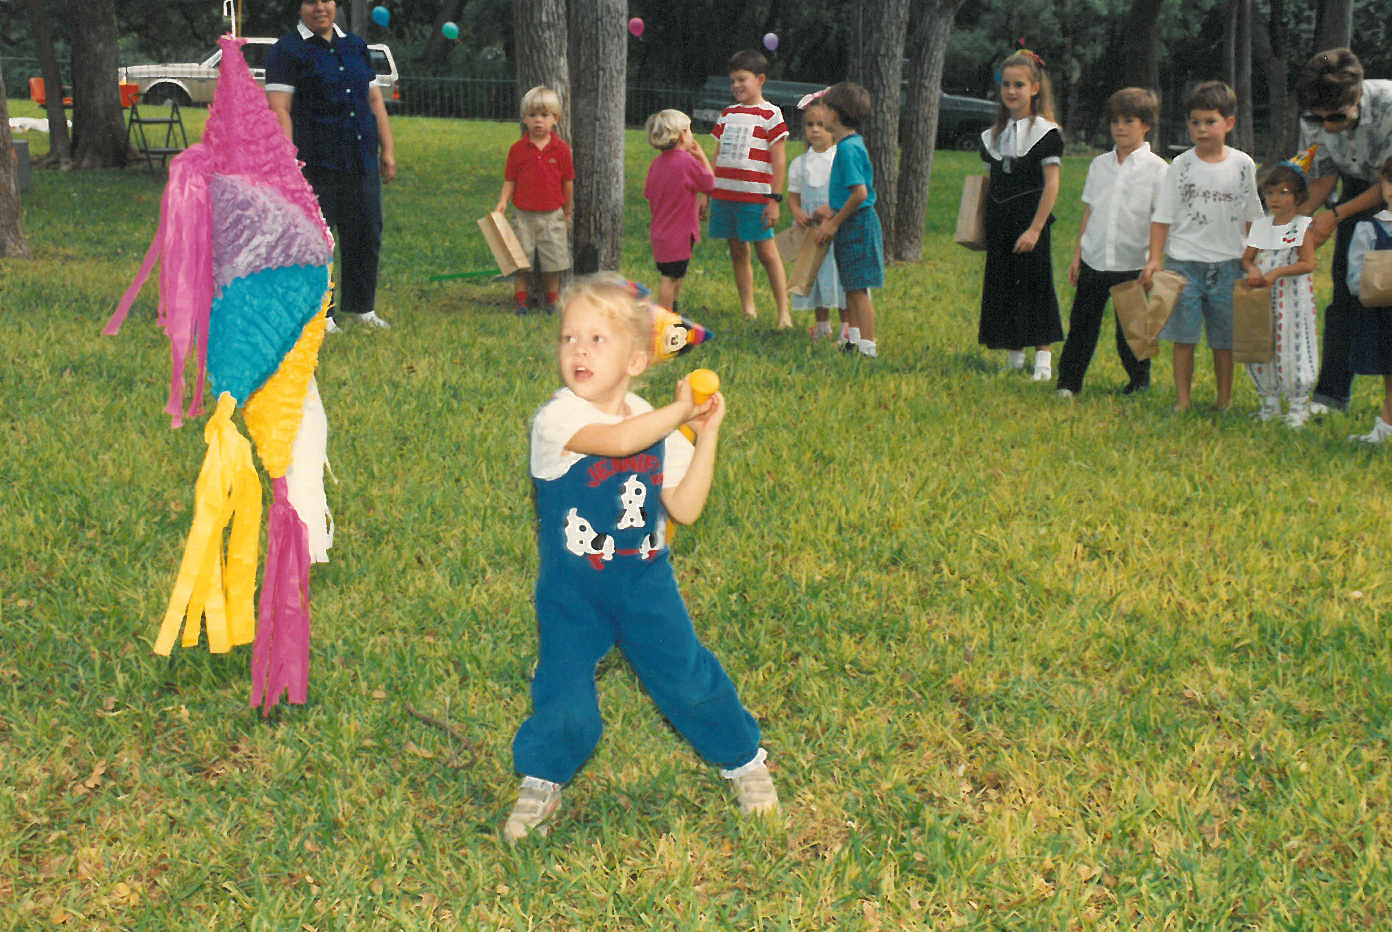 A young Jennifer Berg takes a swing at a pinata in celebration of her birthday at her family's home in Alamo Heights, San Antonio. Photo courtesy of Jennifer Berg.